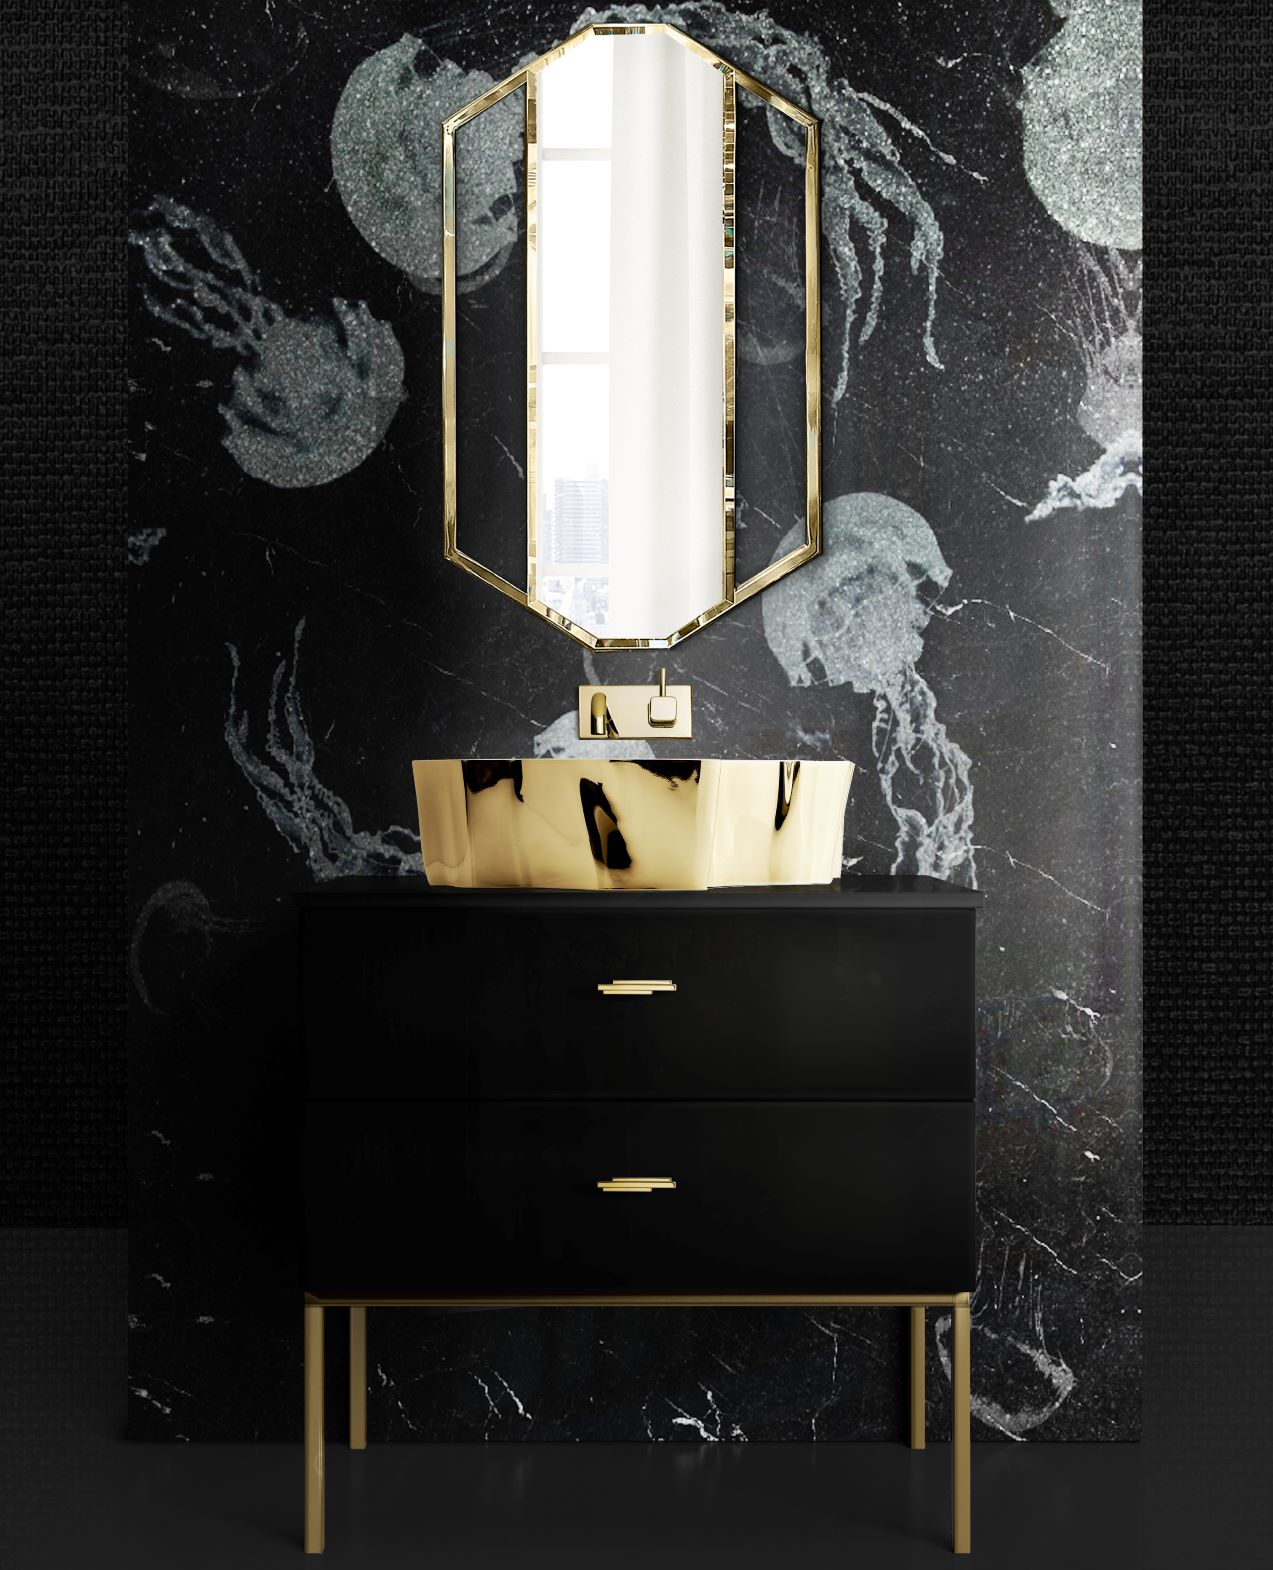 5 Ways To Use Brass In A Bathroom Renovation maison et objet 2019 Highlights of Maison et Objet 2019 partner 3